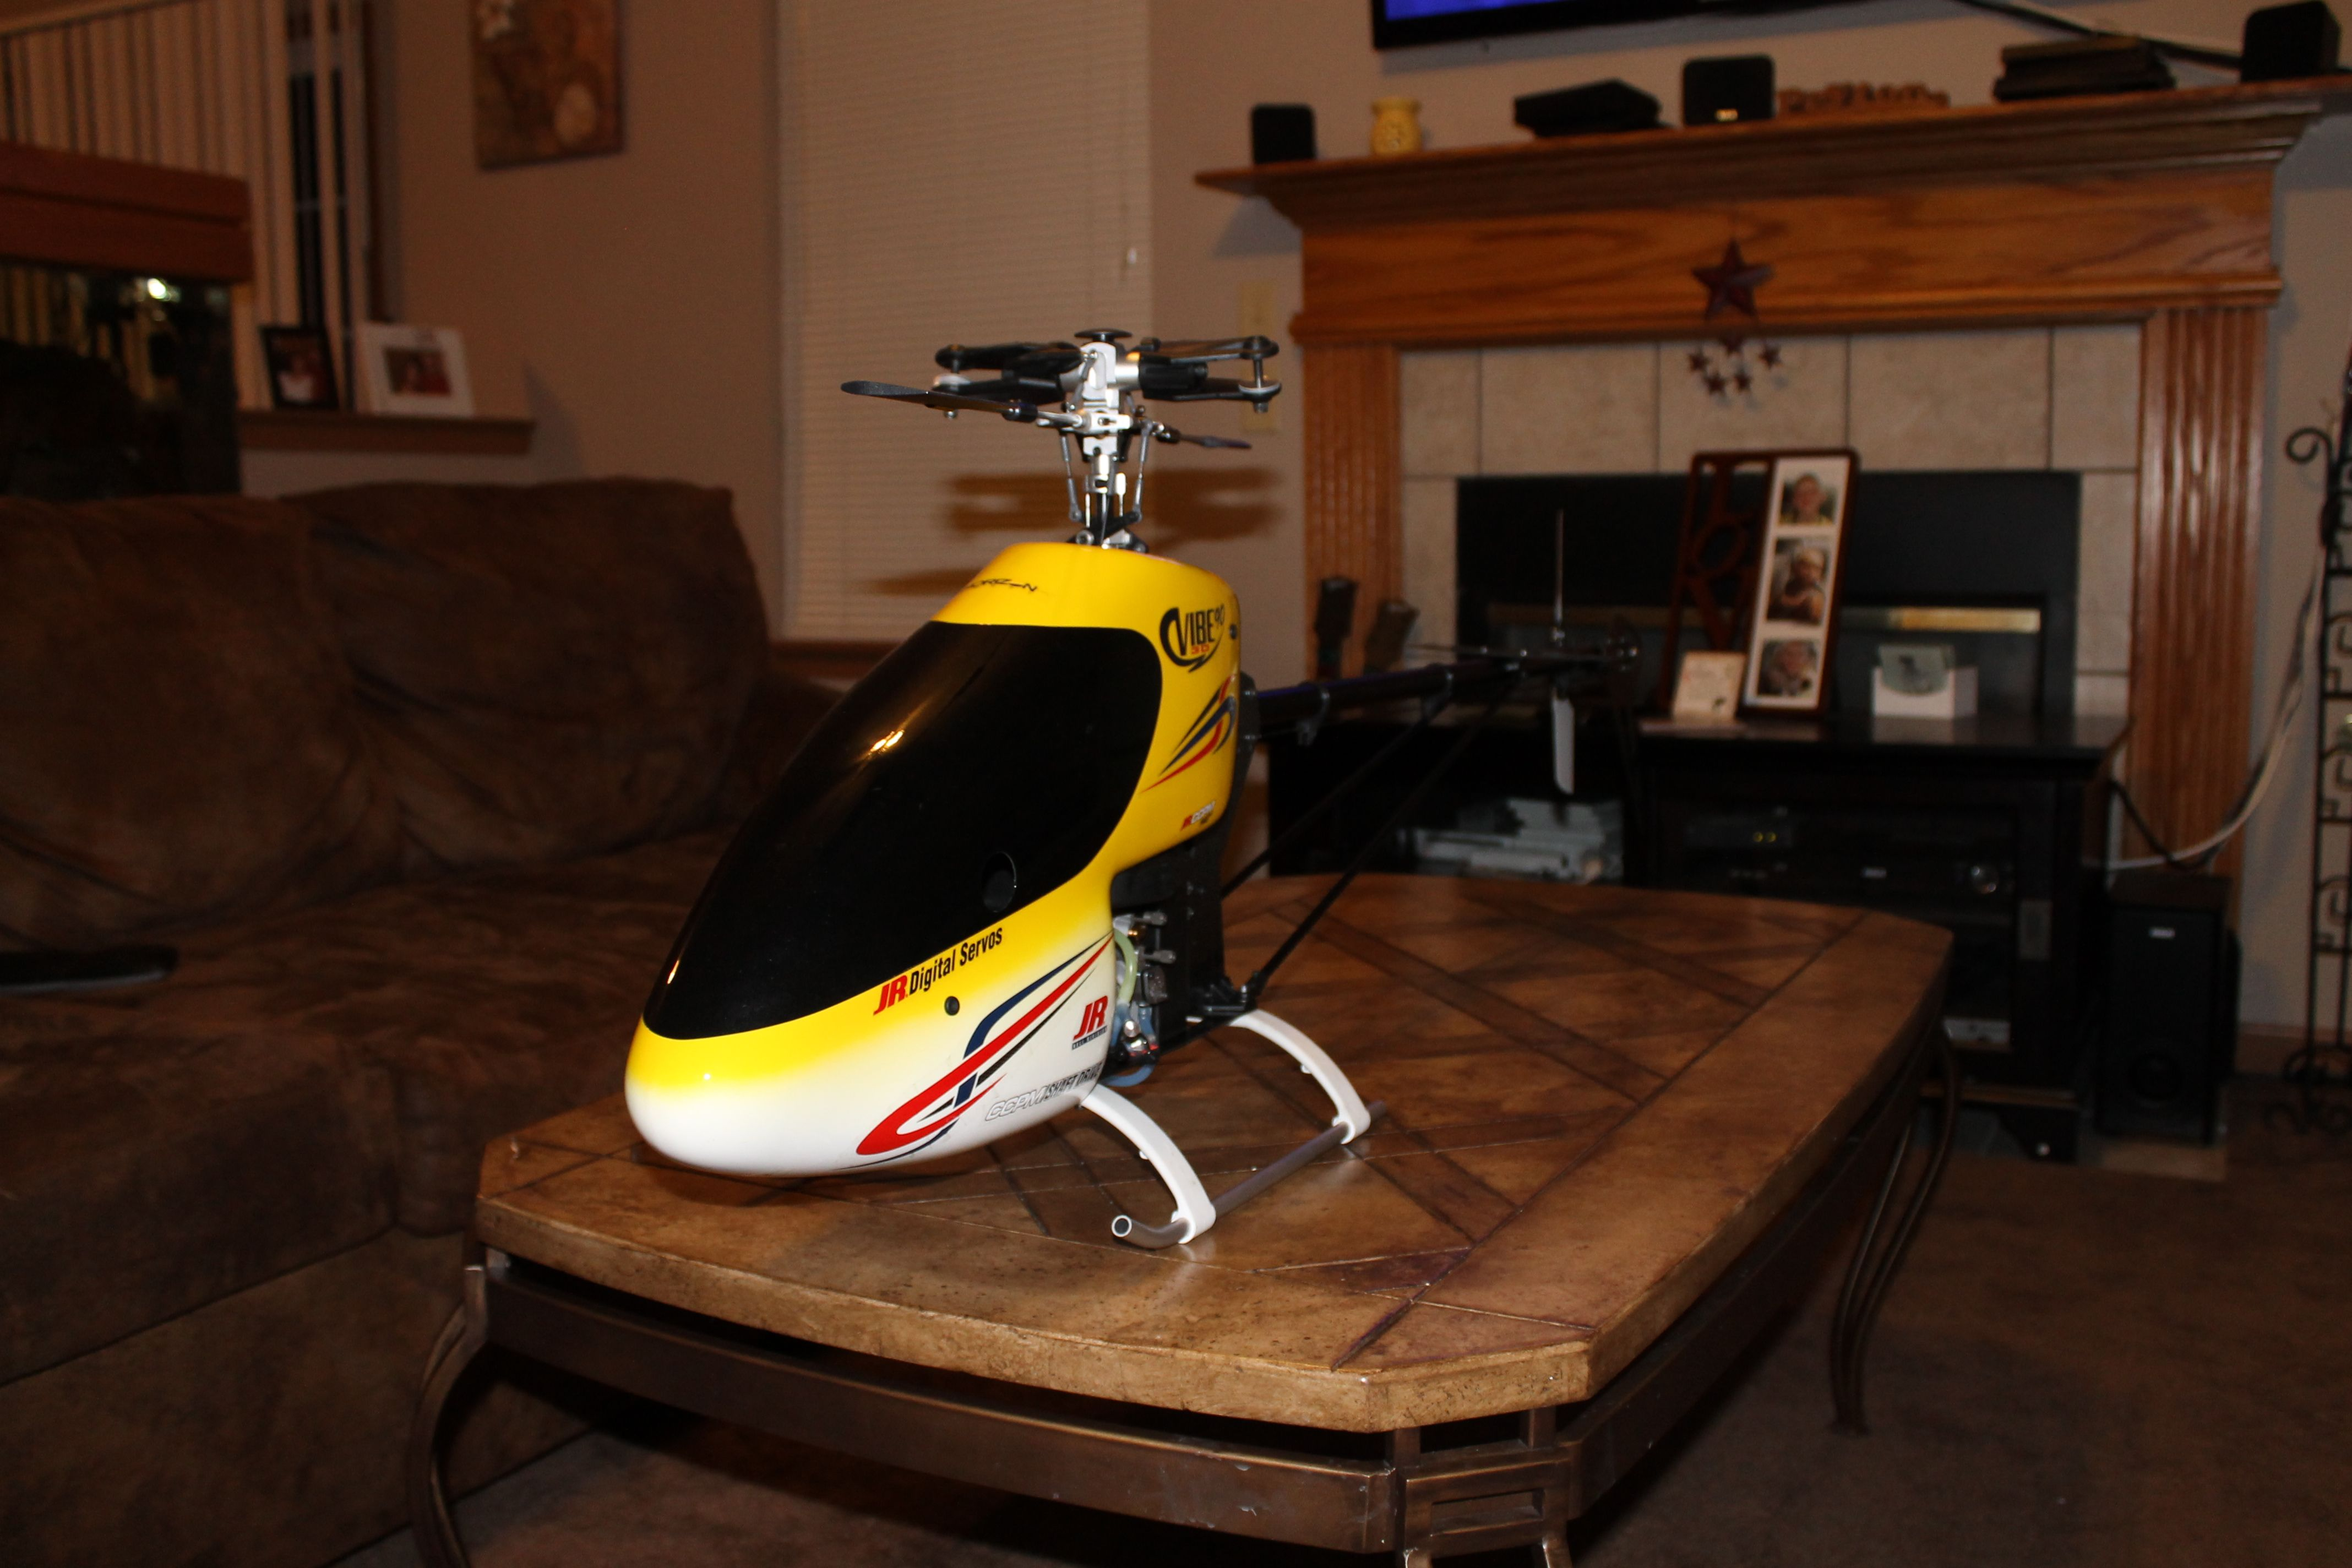 Helicopter 2 jr vibe 90 3d 39 s page 1 - Runryder rc heli ...